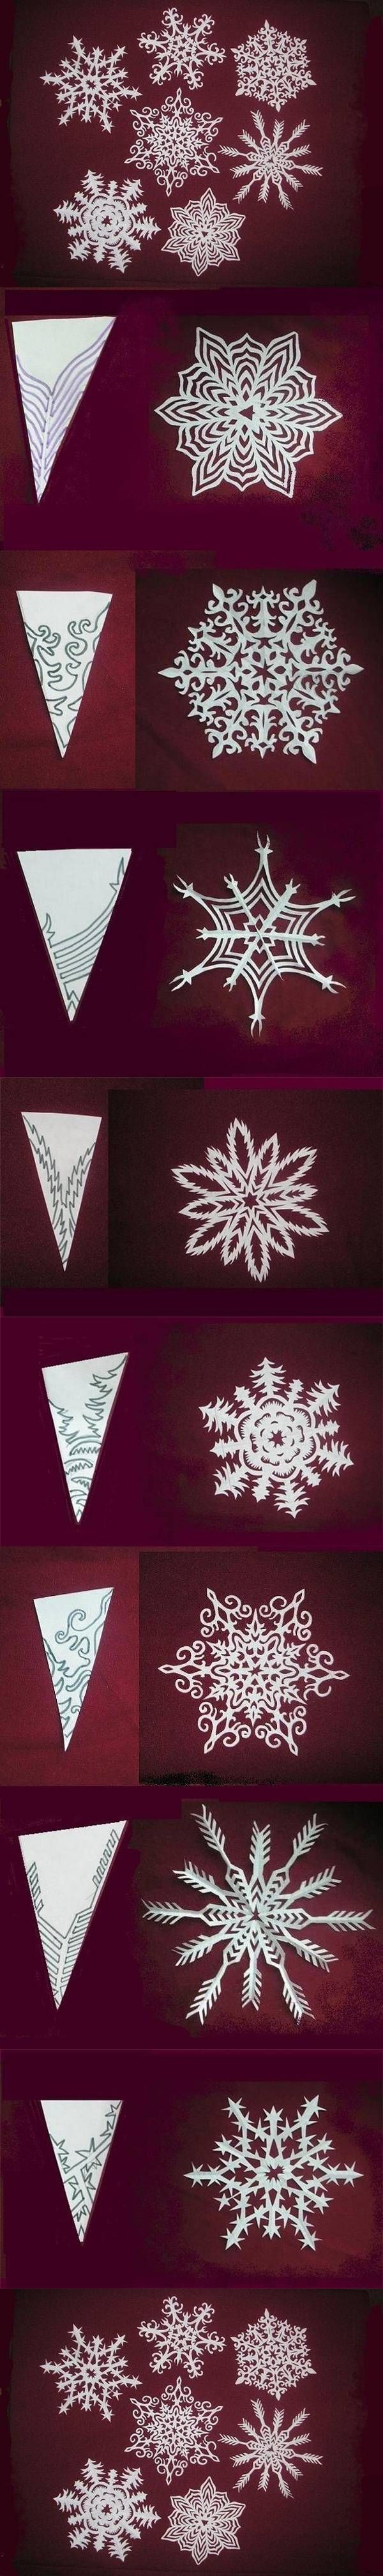 Diy snowflakes paper pattern cute crafts pinterest paper diy snowflakes paper pattern tutorial diy craft crafts diy crafts how to tutorial winter crafts christmas crafts christmas decorations jeuxipadfo Choice Image